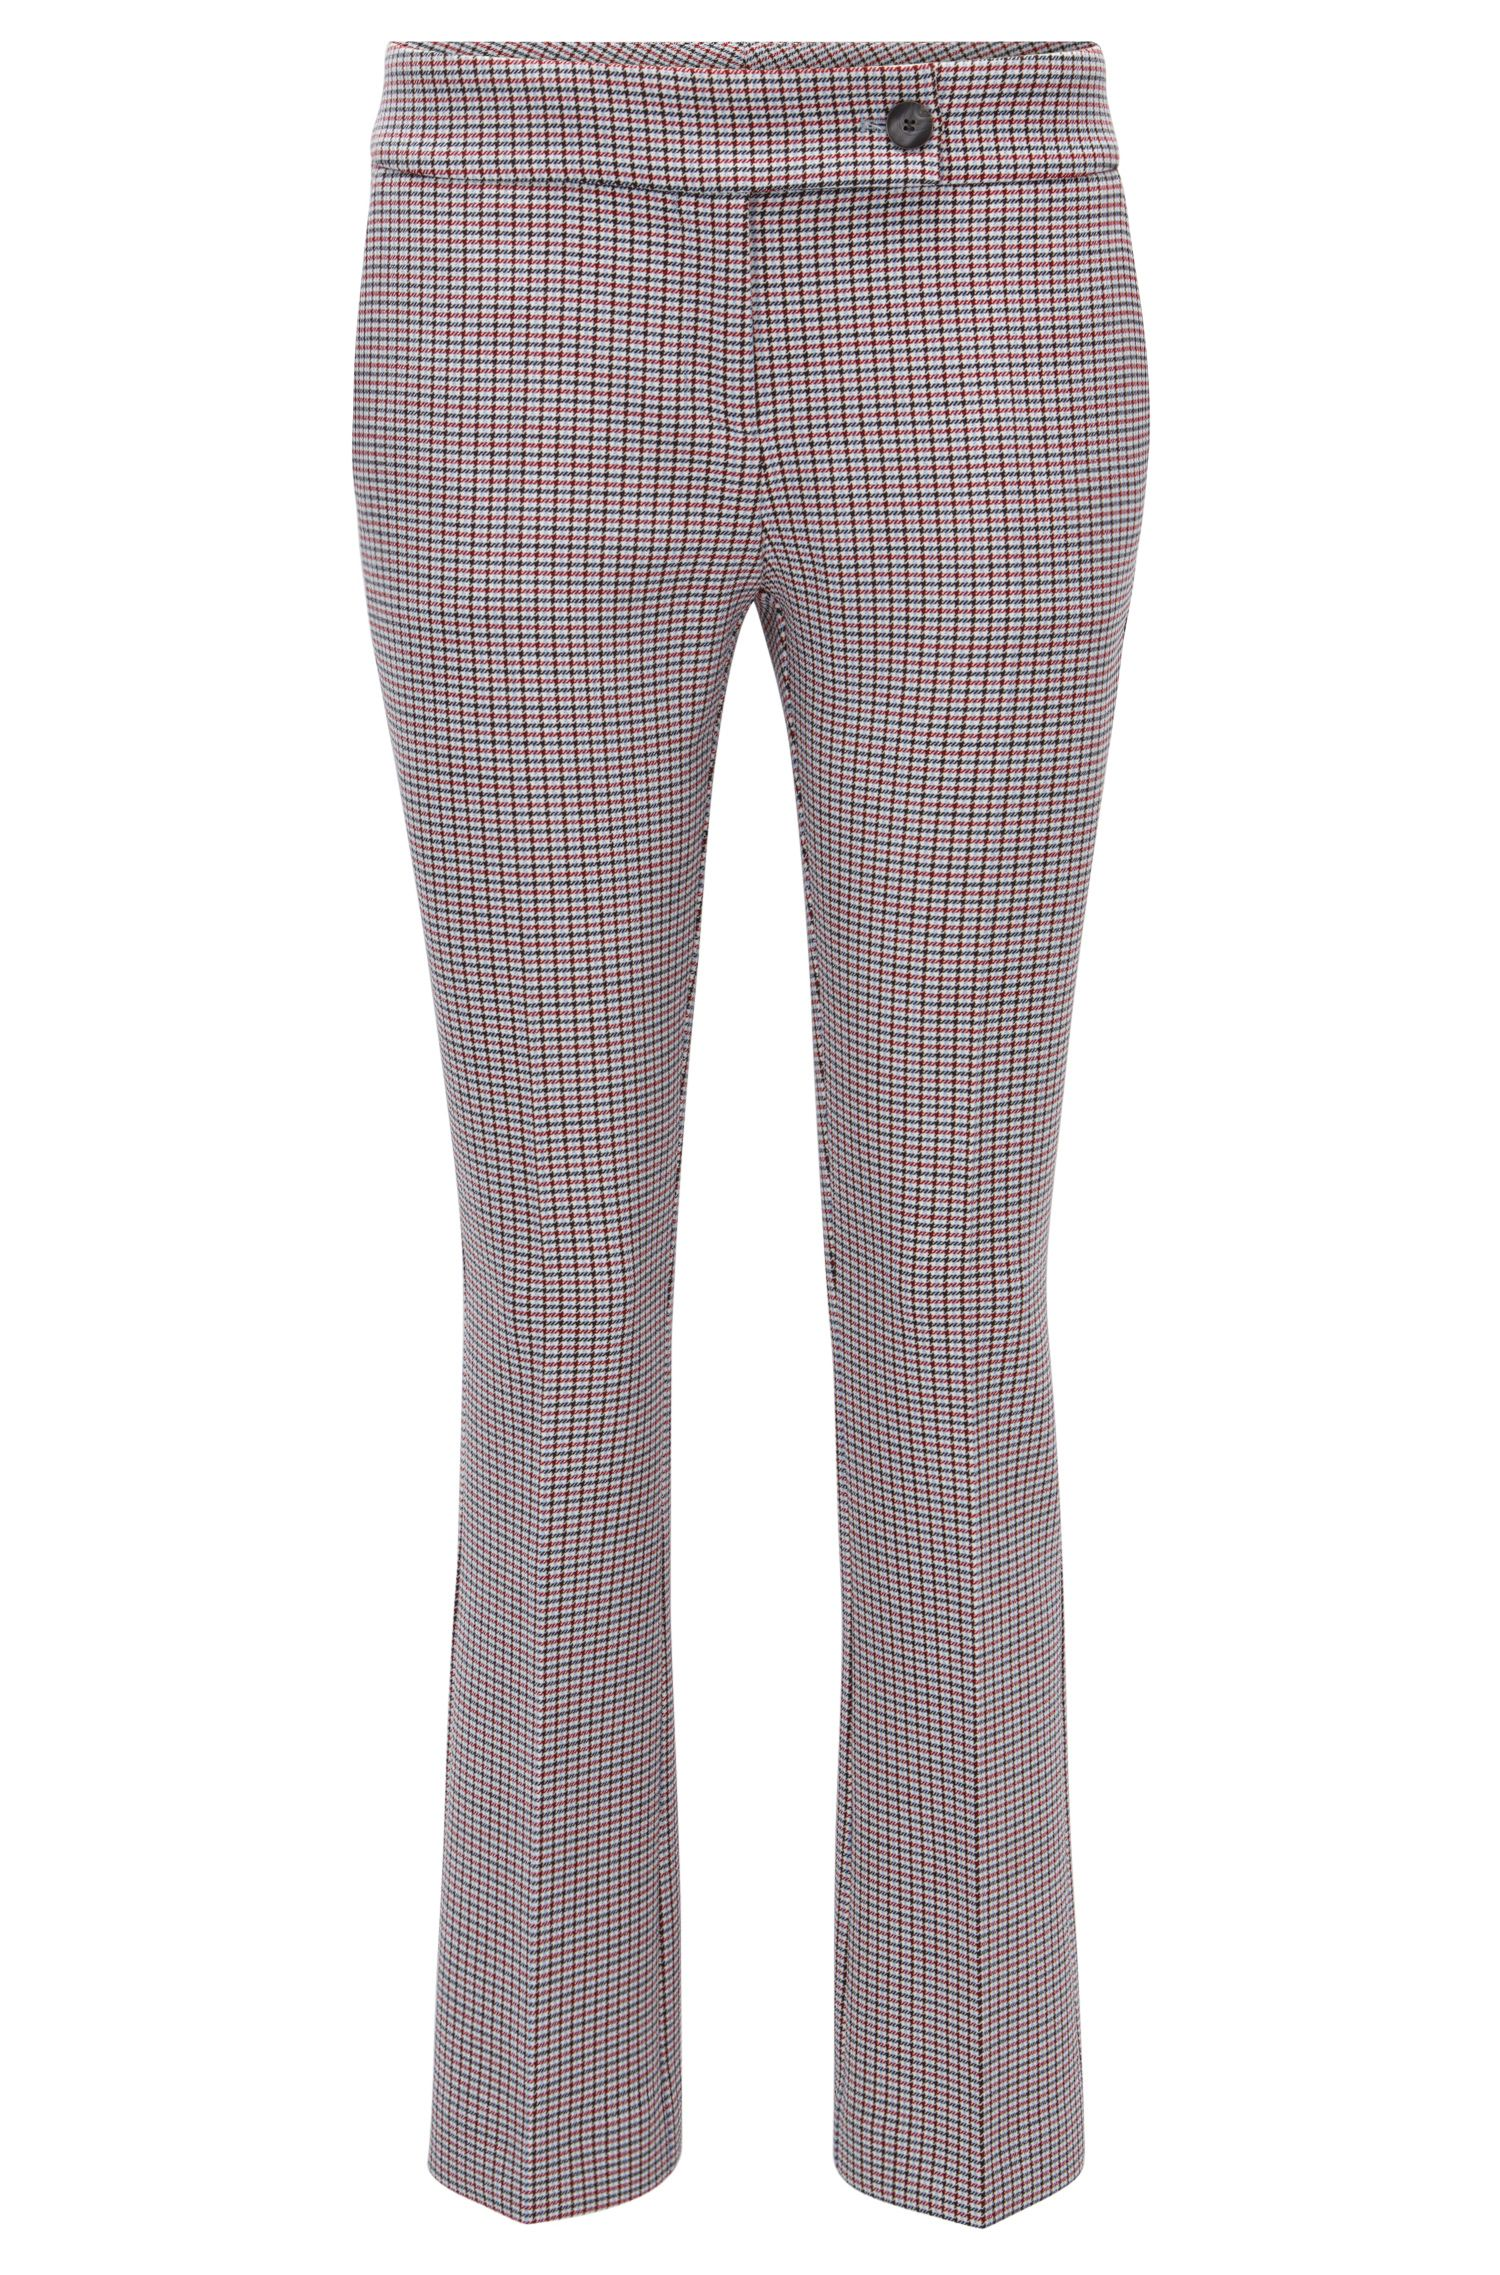 Pantalon Regular Fit en tissu double face